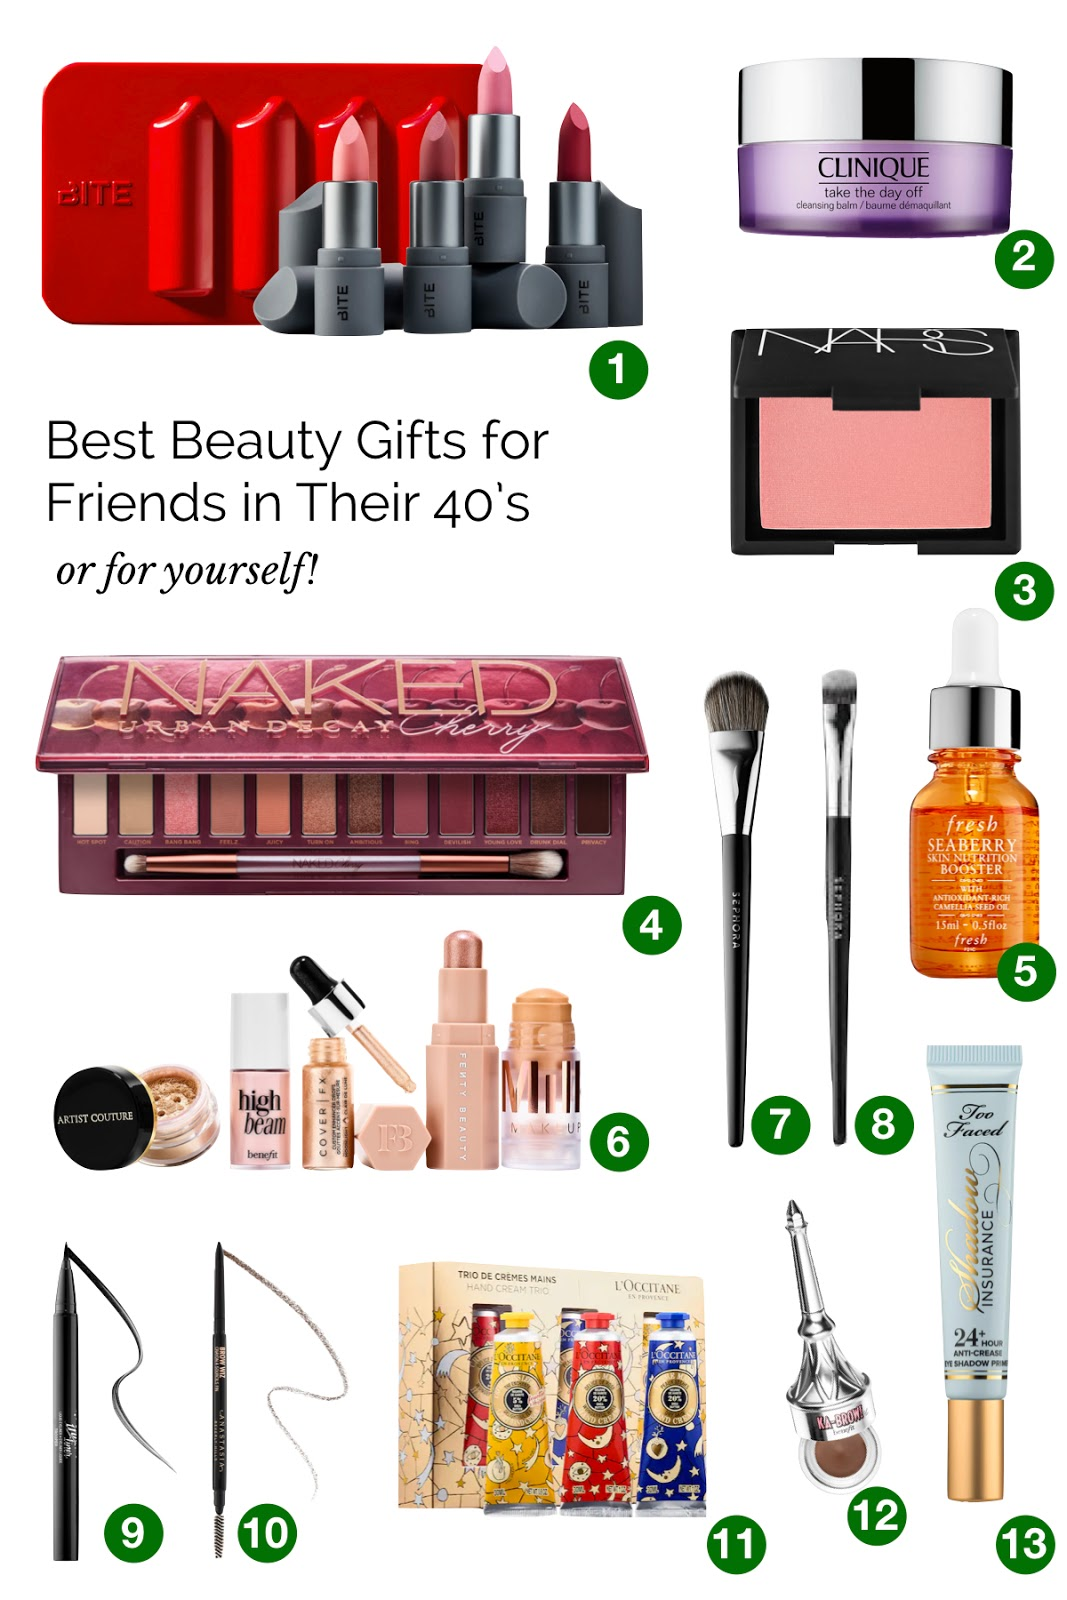 Best beauty products for women in their 40's from Sephora